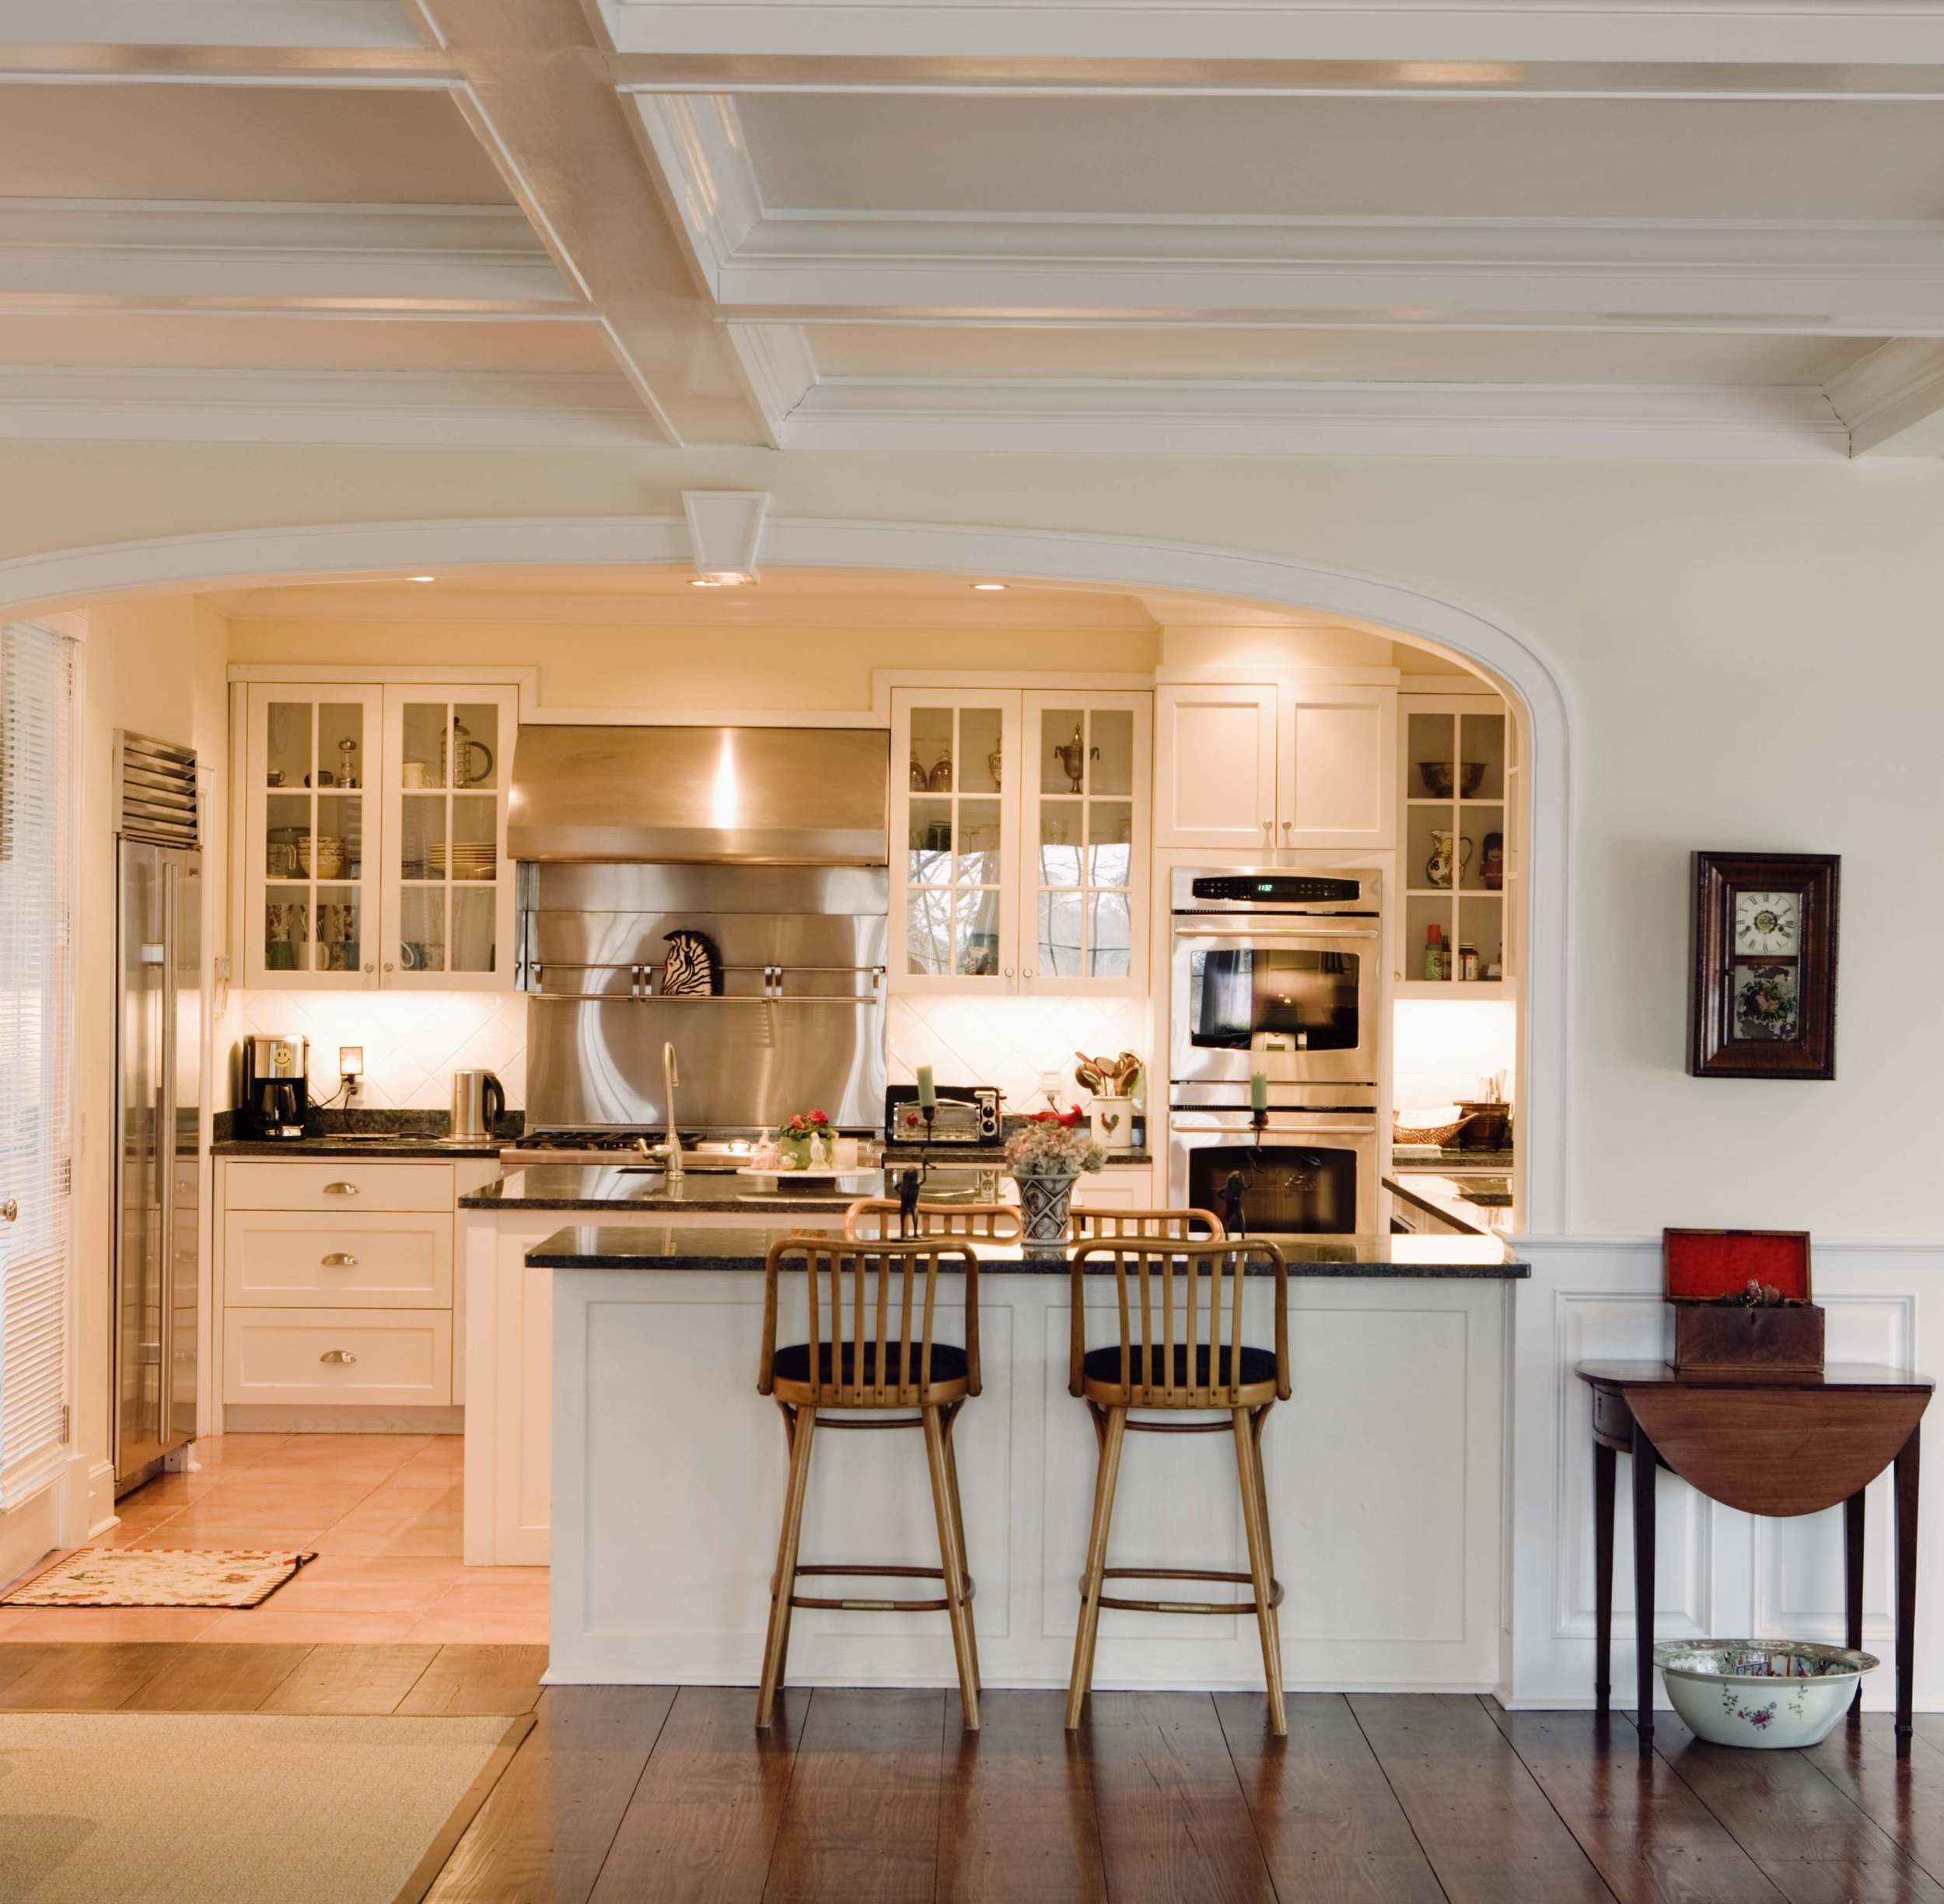 Transitional Design (shown here)borrowing from traditional moulding elements withclean crisp contrasting colors that create a distinguishedkitchen space.